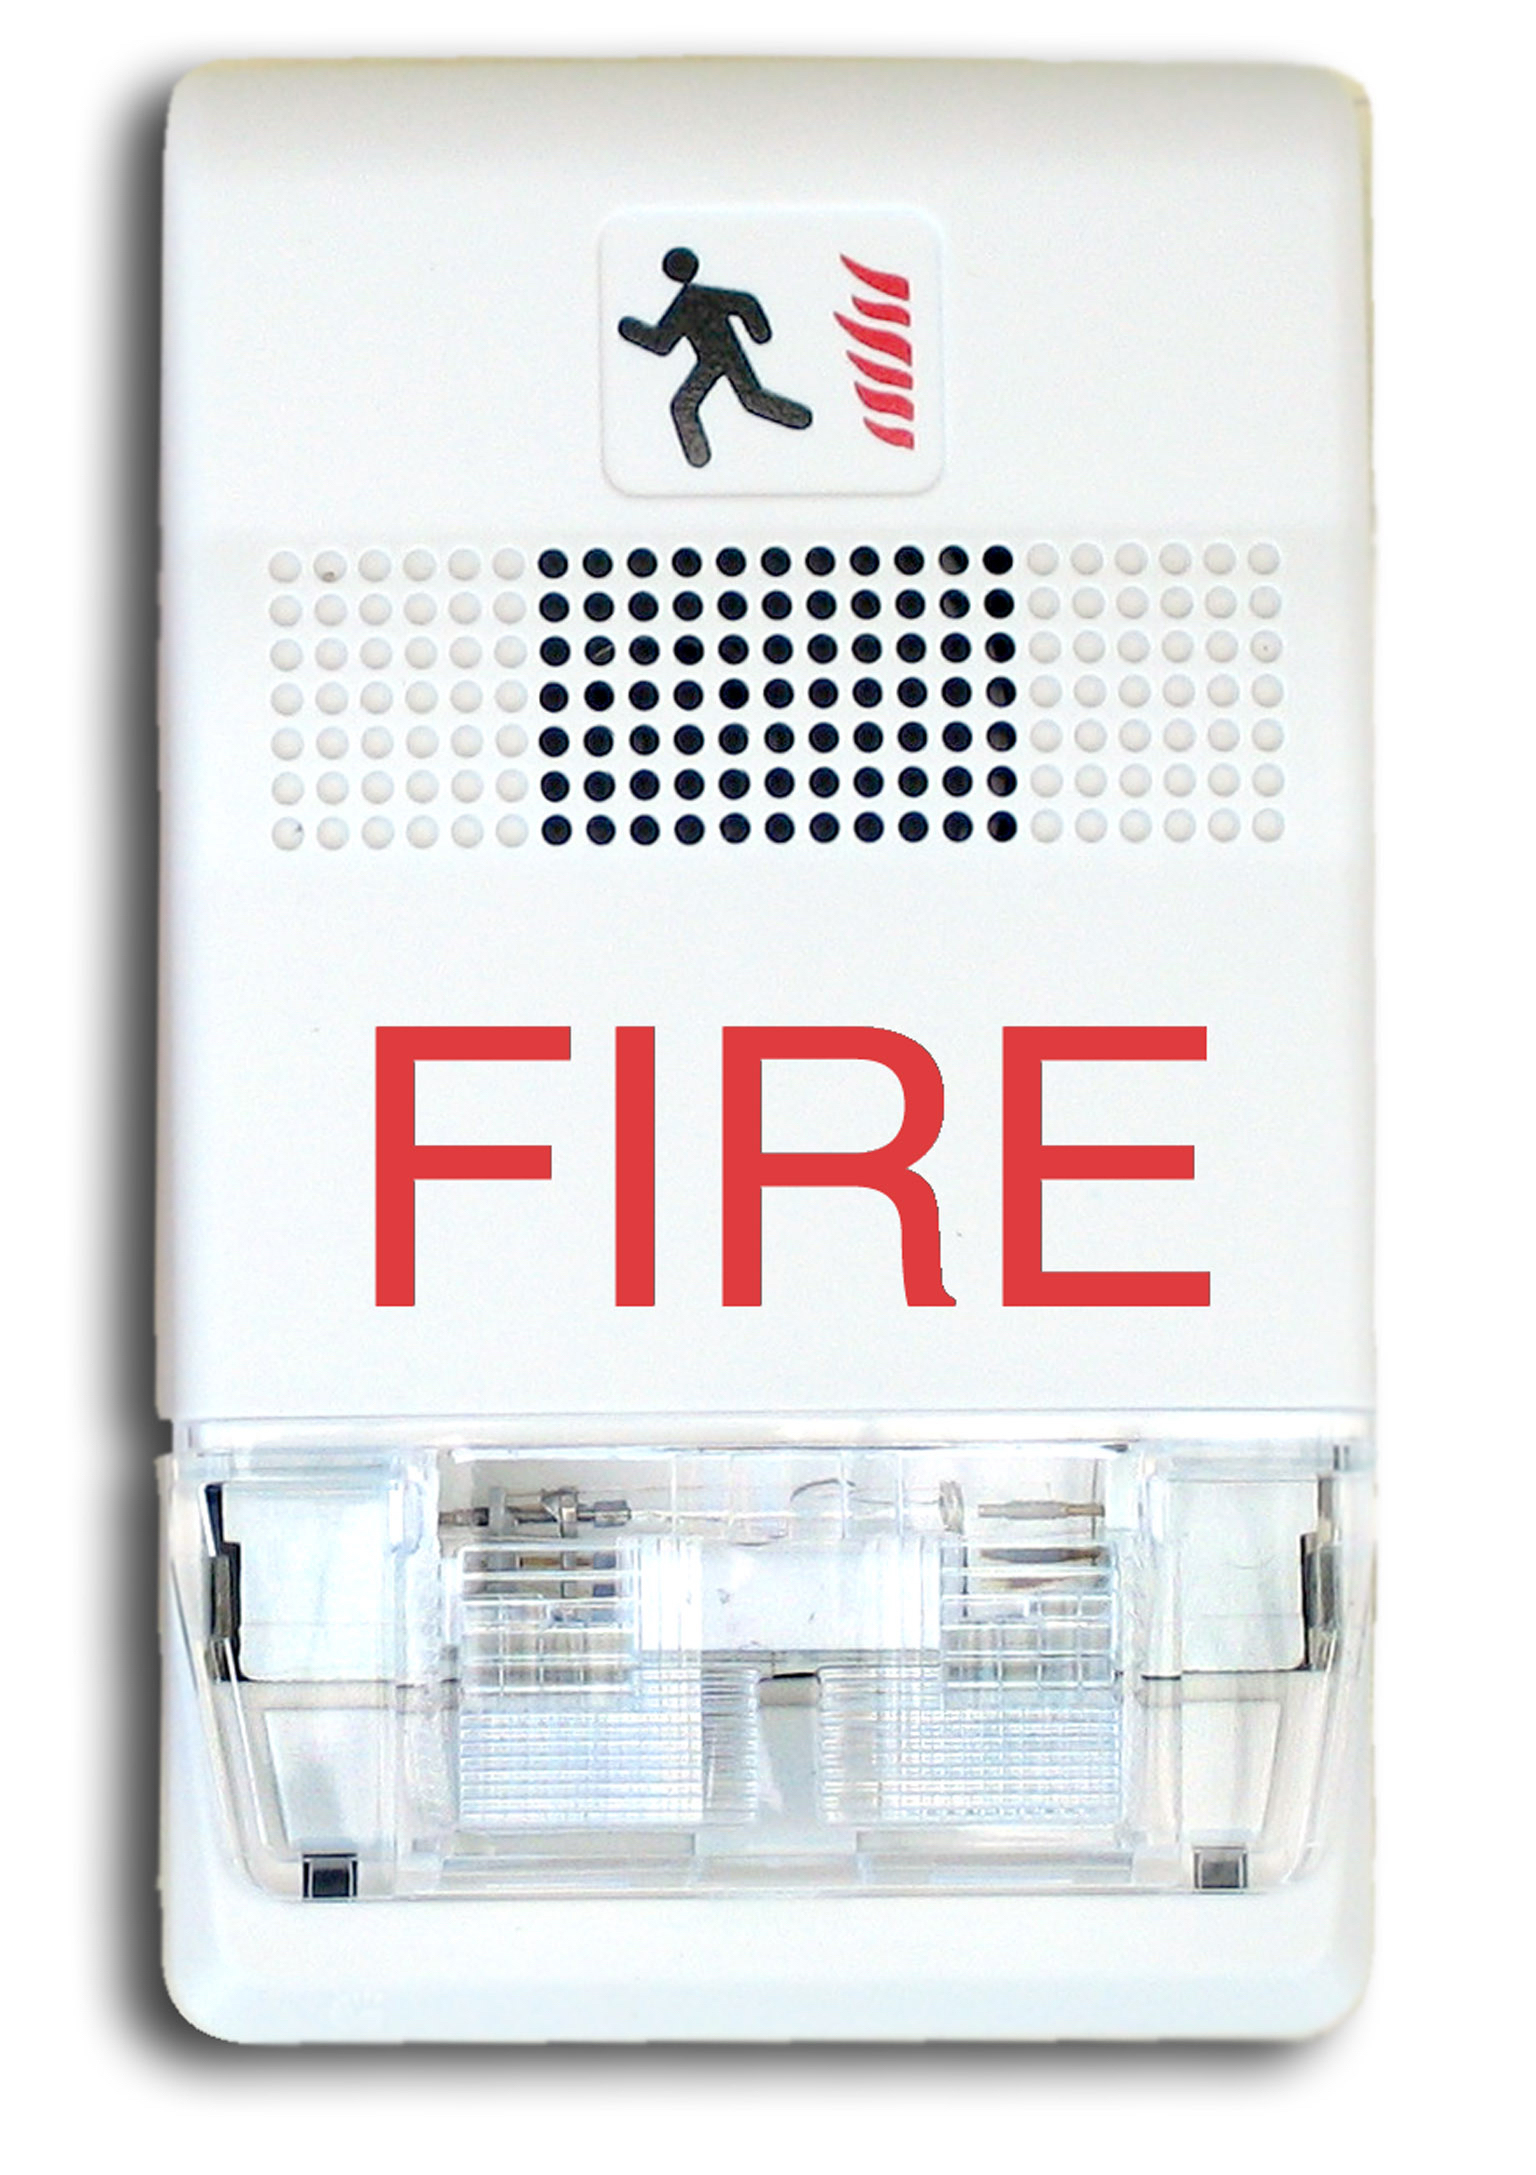 Chubb Edwards Siga Ps 9350 furthermore System Sensor P2475 together with 201283111487 as well Klaxon Fire Bell furthermore ESL Interlogix Hard Wired Smoke Alarms Recalled. on edwards fire alarm